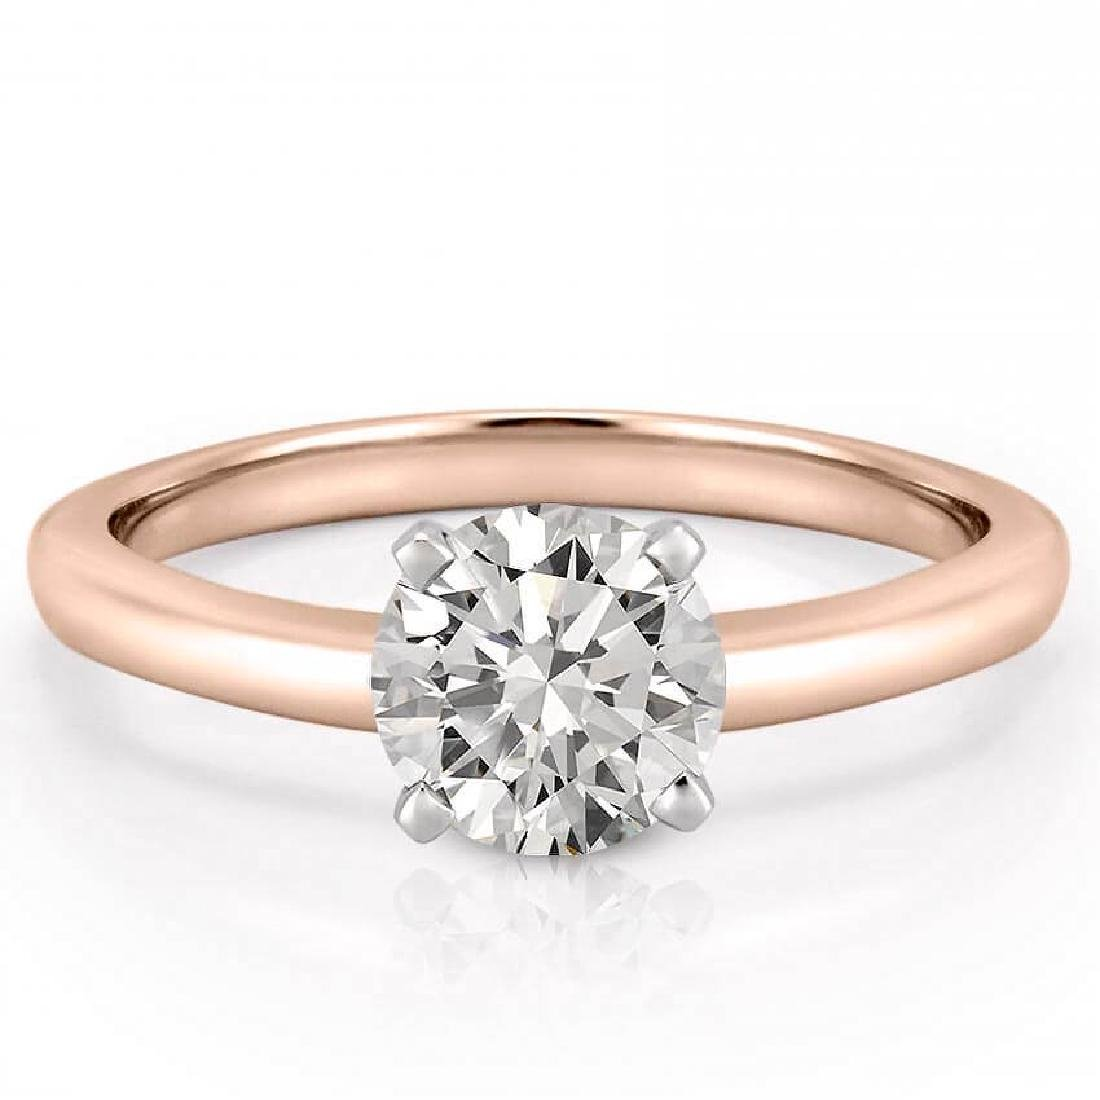 CERTIFIED 1 CTW ROUND D/VVS1 DIAMOND SOLITAIRE RING IN